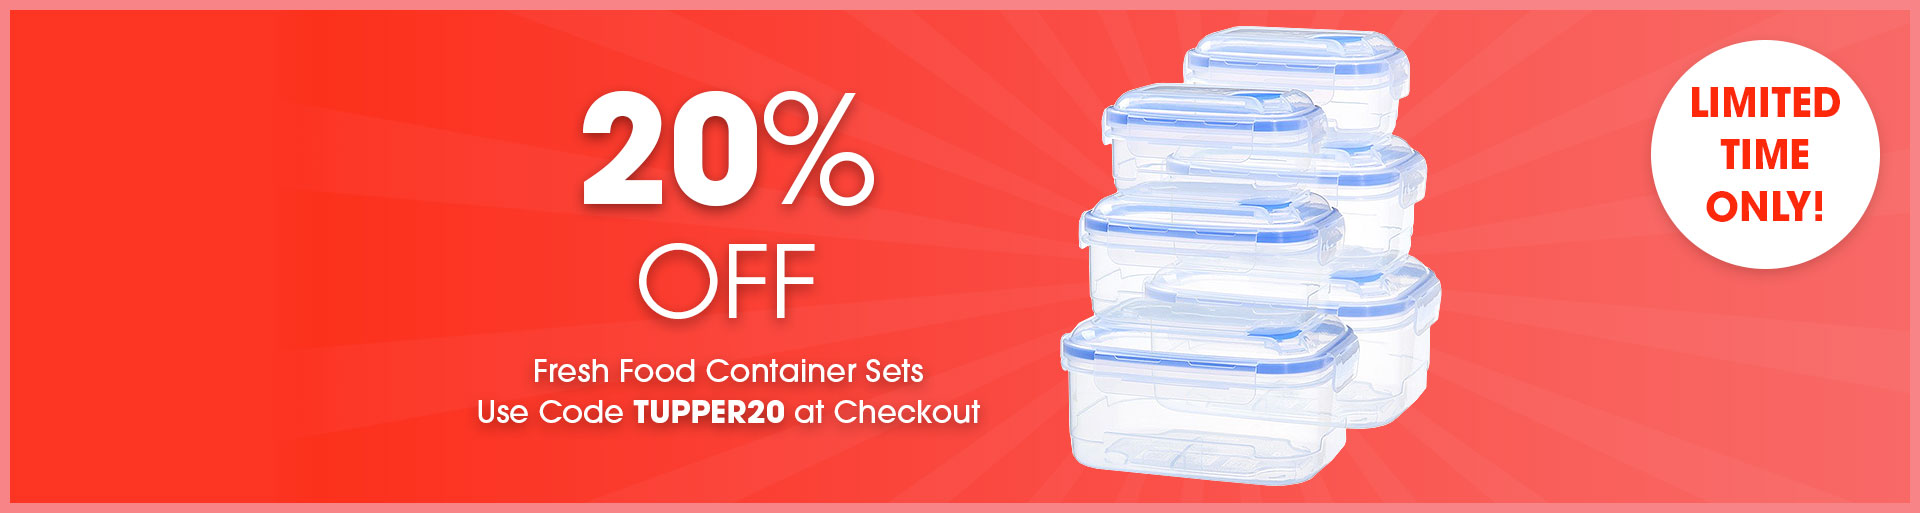 mychoice fresh food container sets